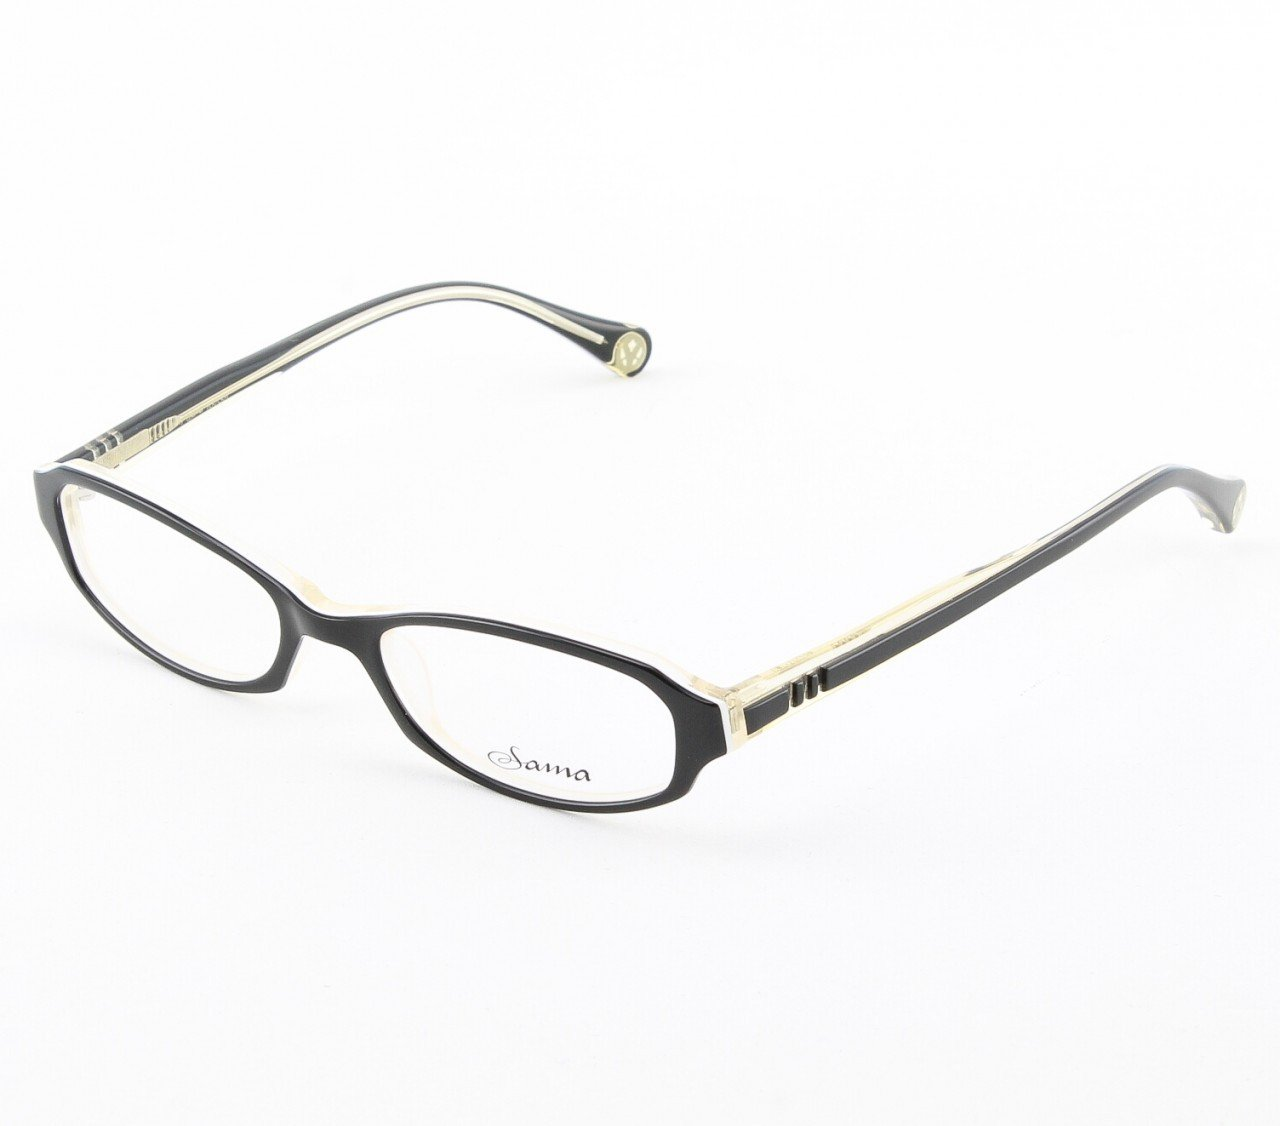 Loree Rodkin Courtney Eyeglasses by Sama Col. Black/Cream with Clear Lenses